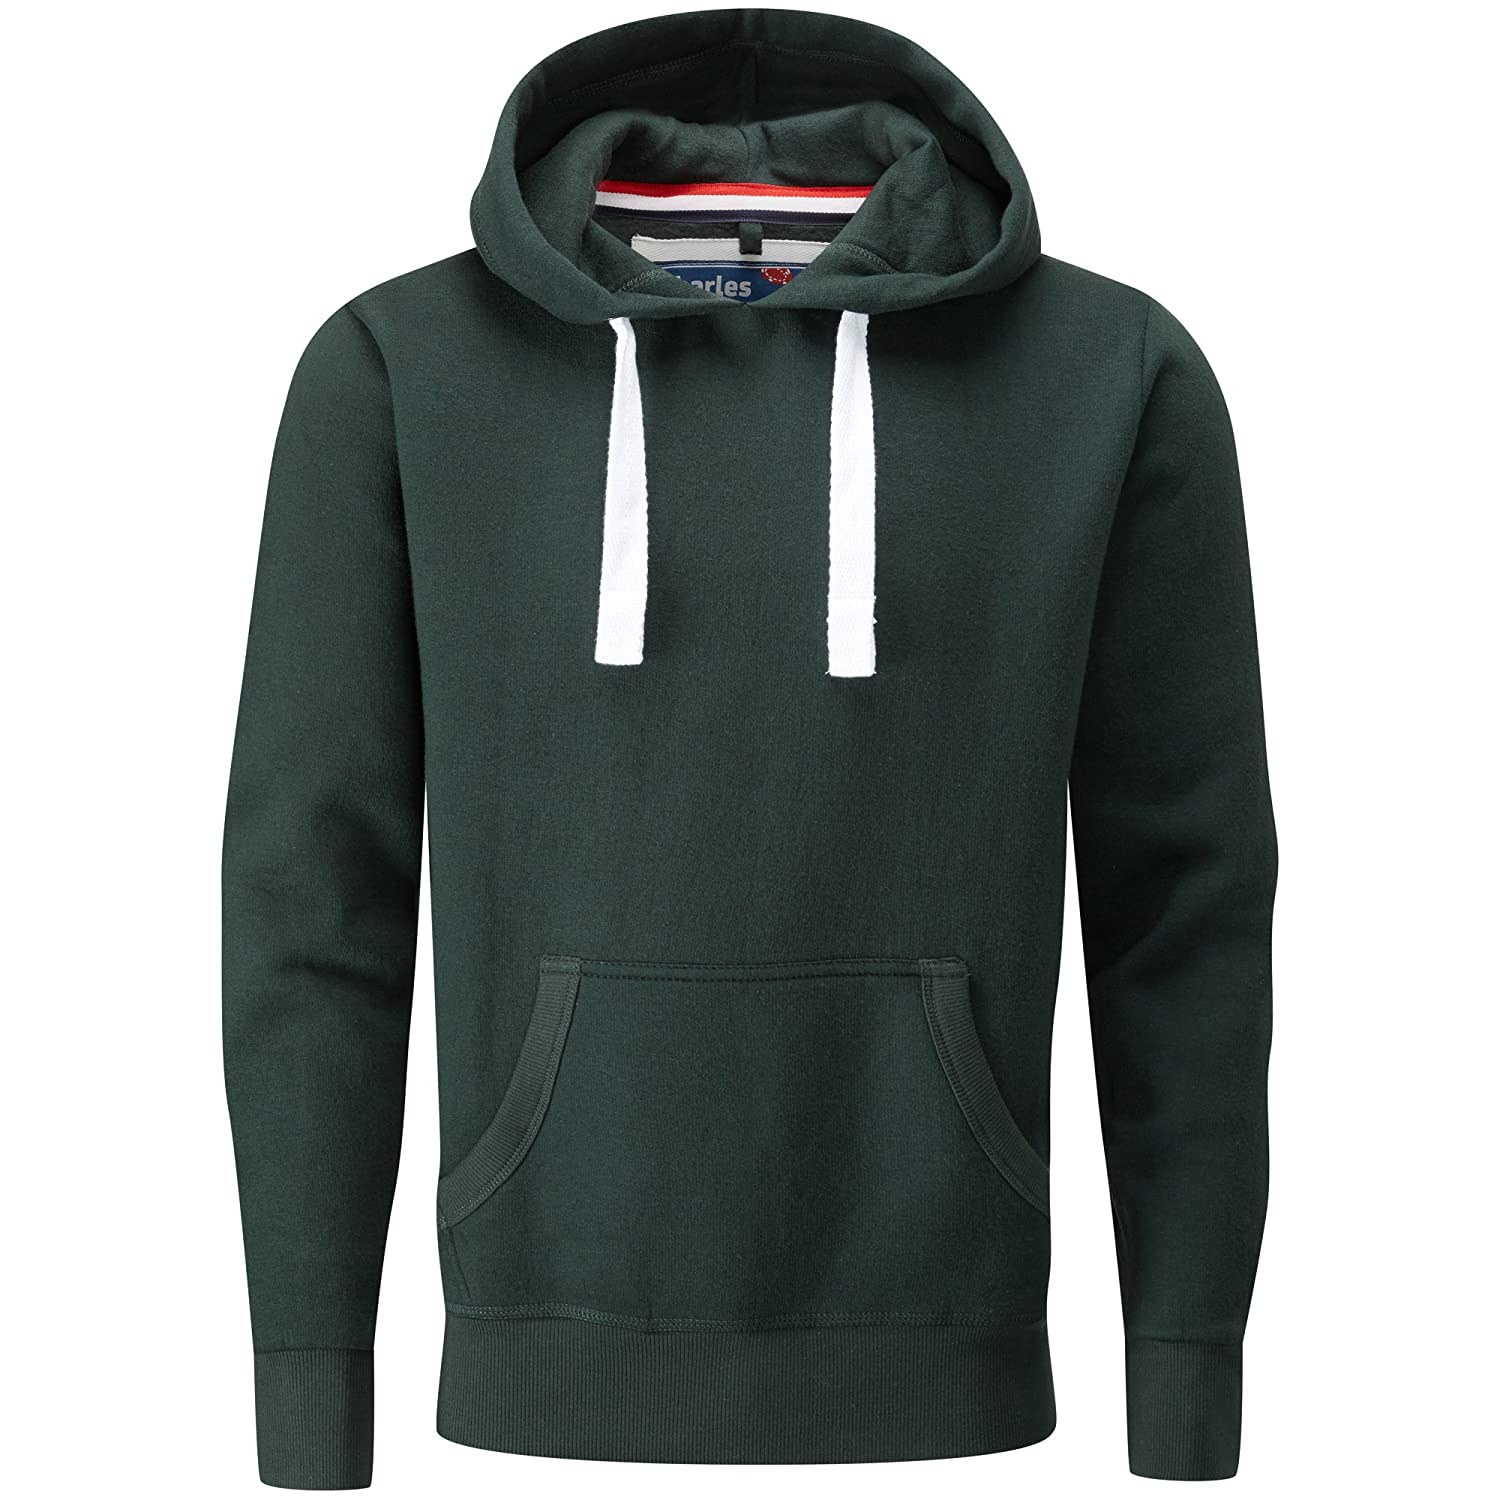 Charles Wilson Men's Midweight Cotton Blend Pullover Slim Fit Hoody